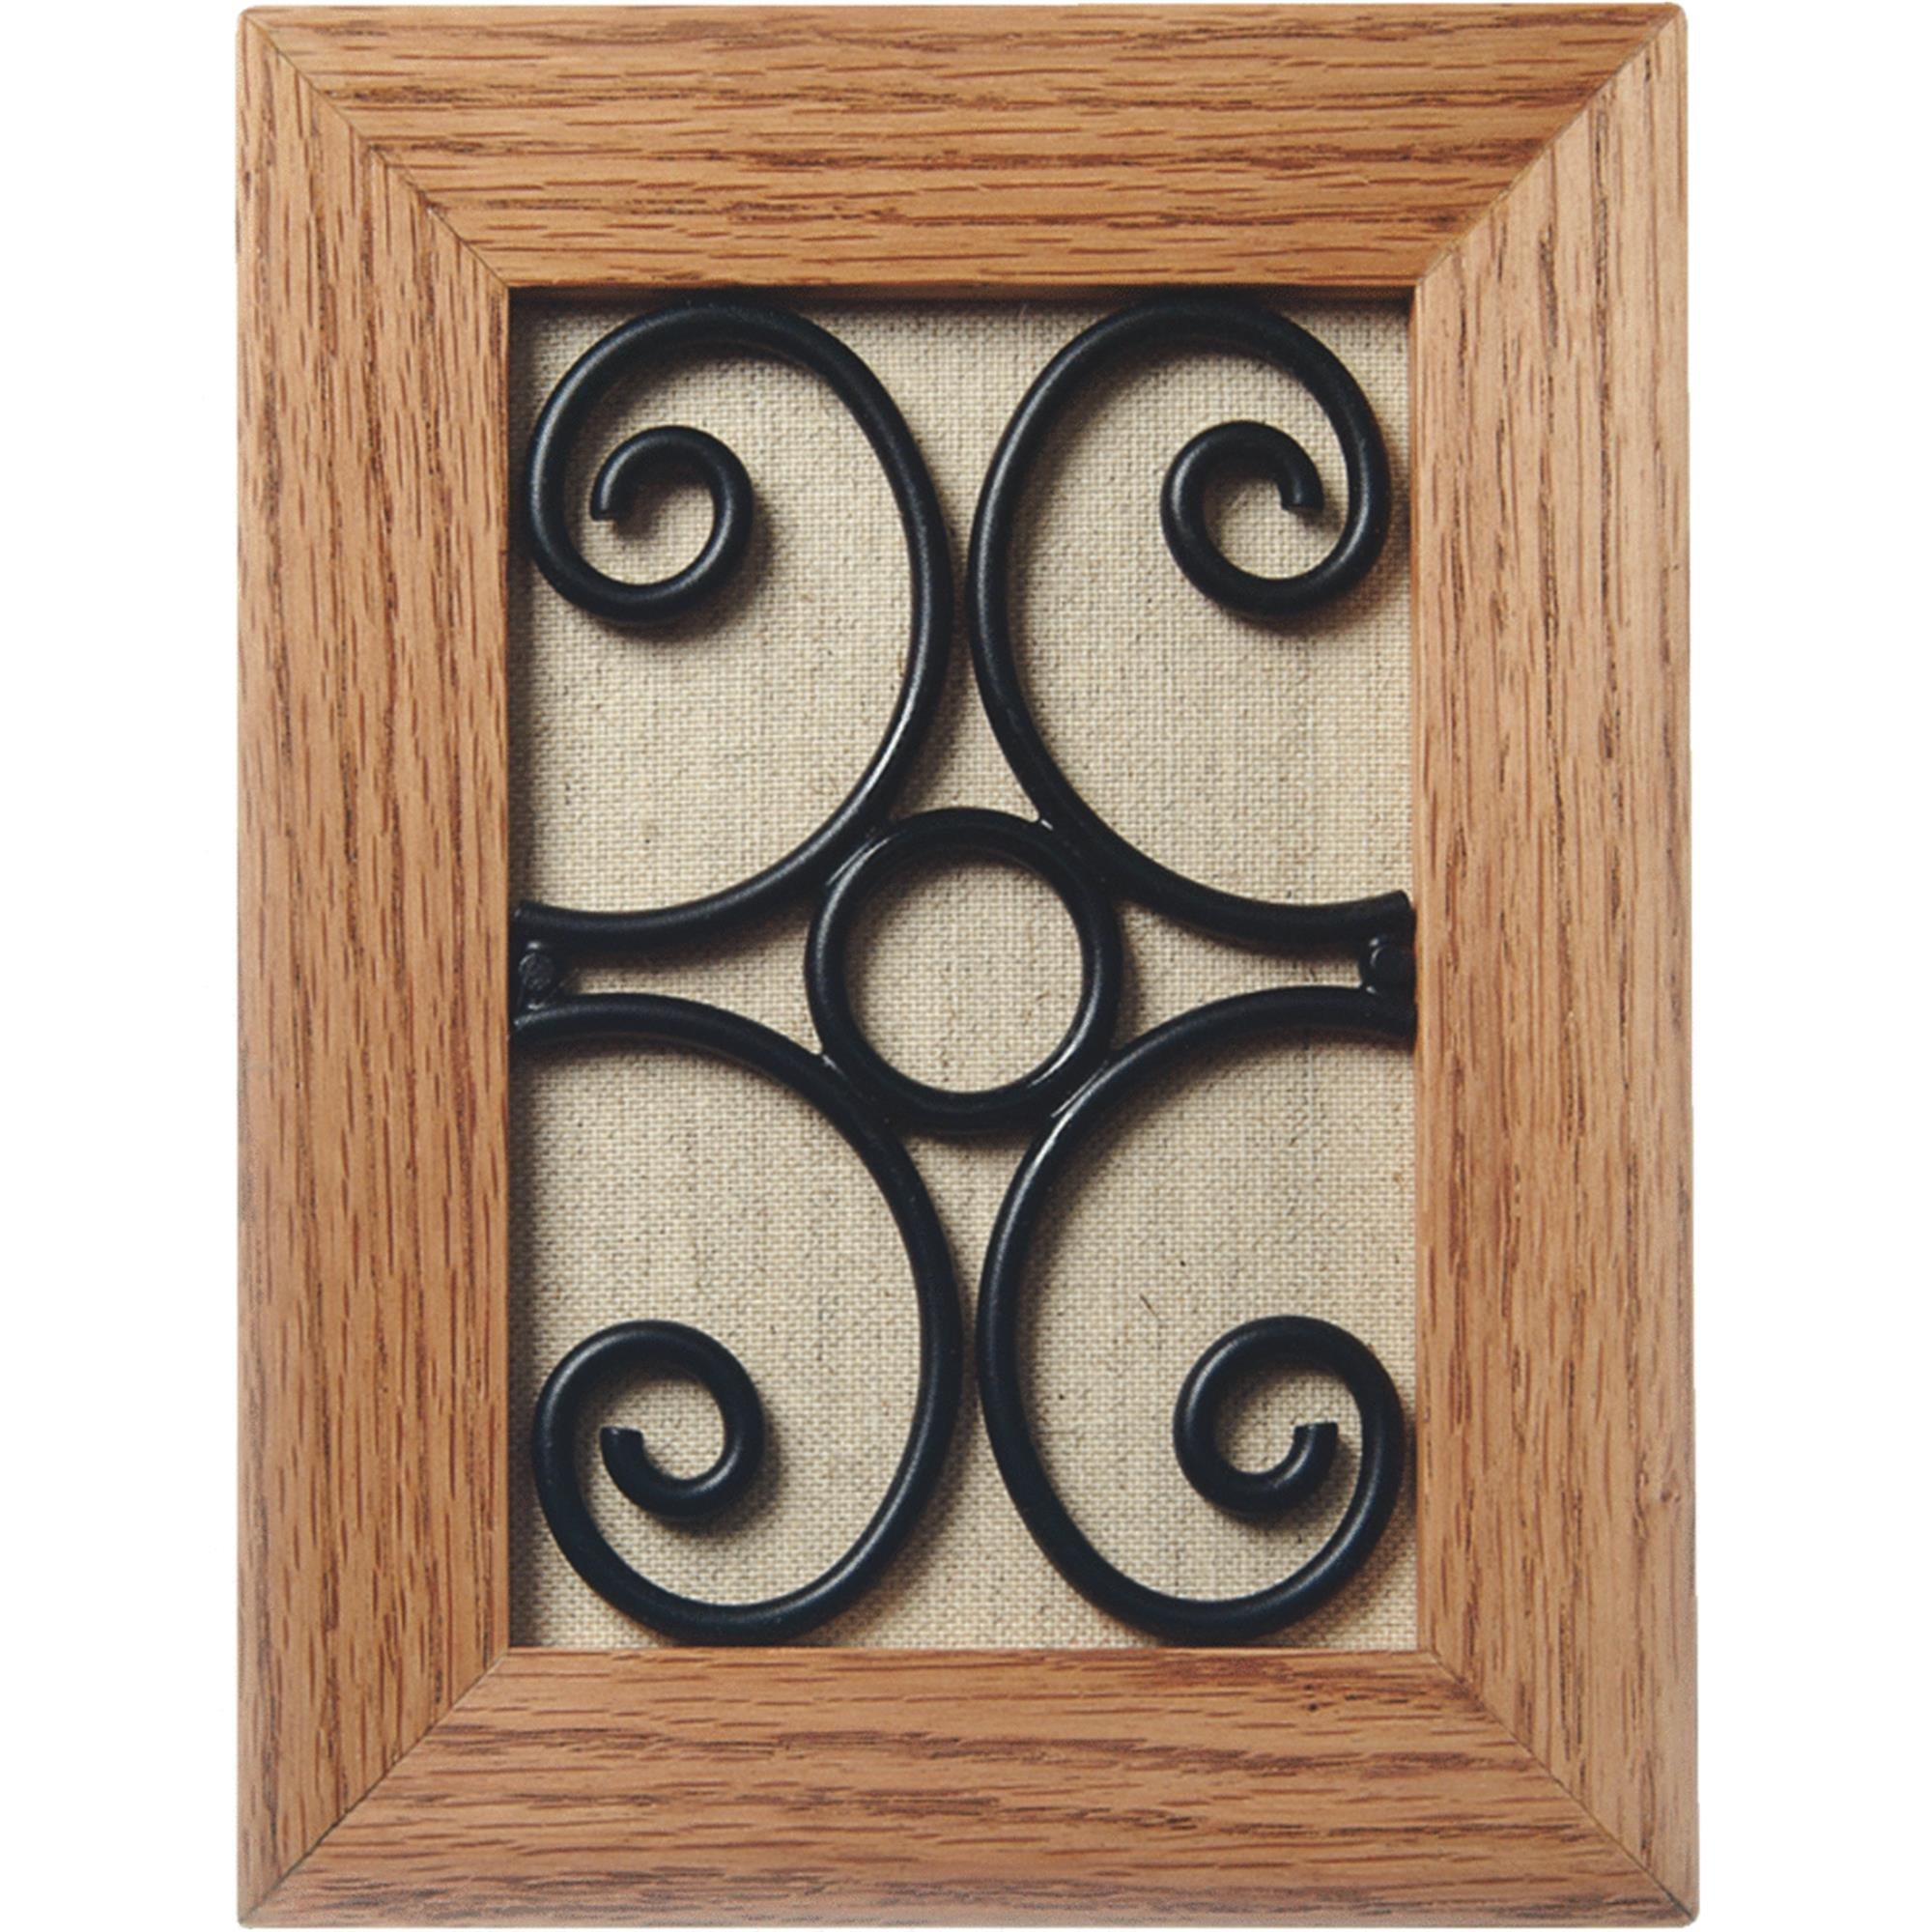 Carlon Wood Wired Door Chime